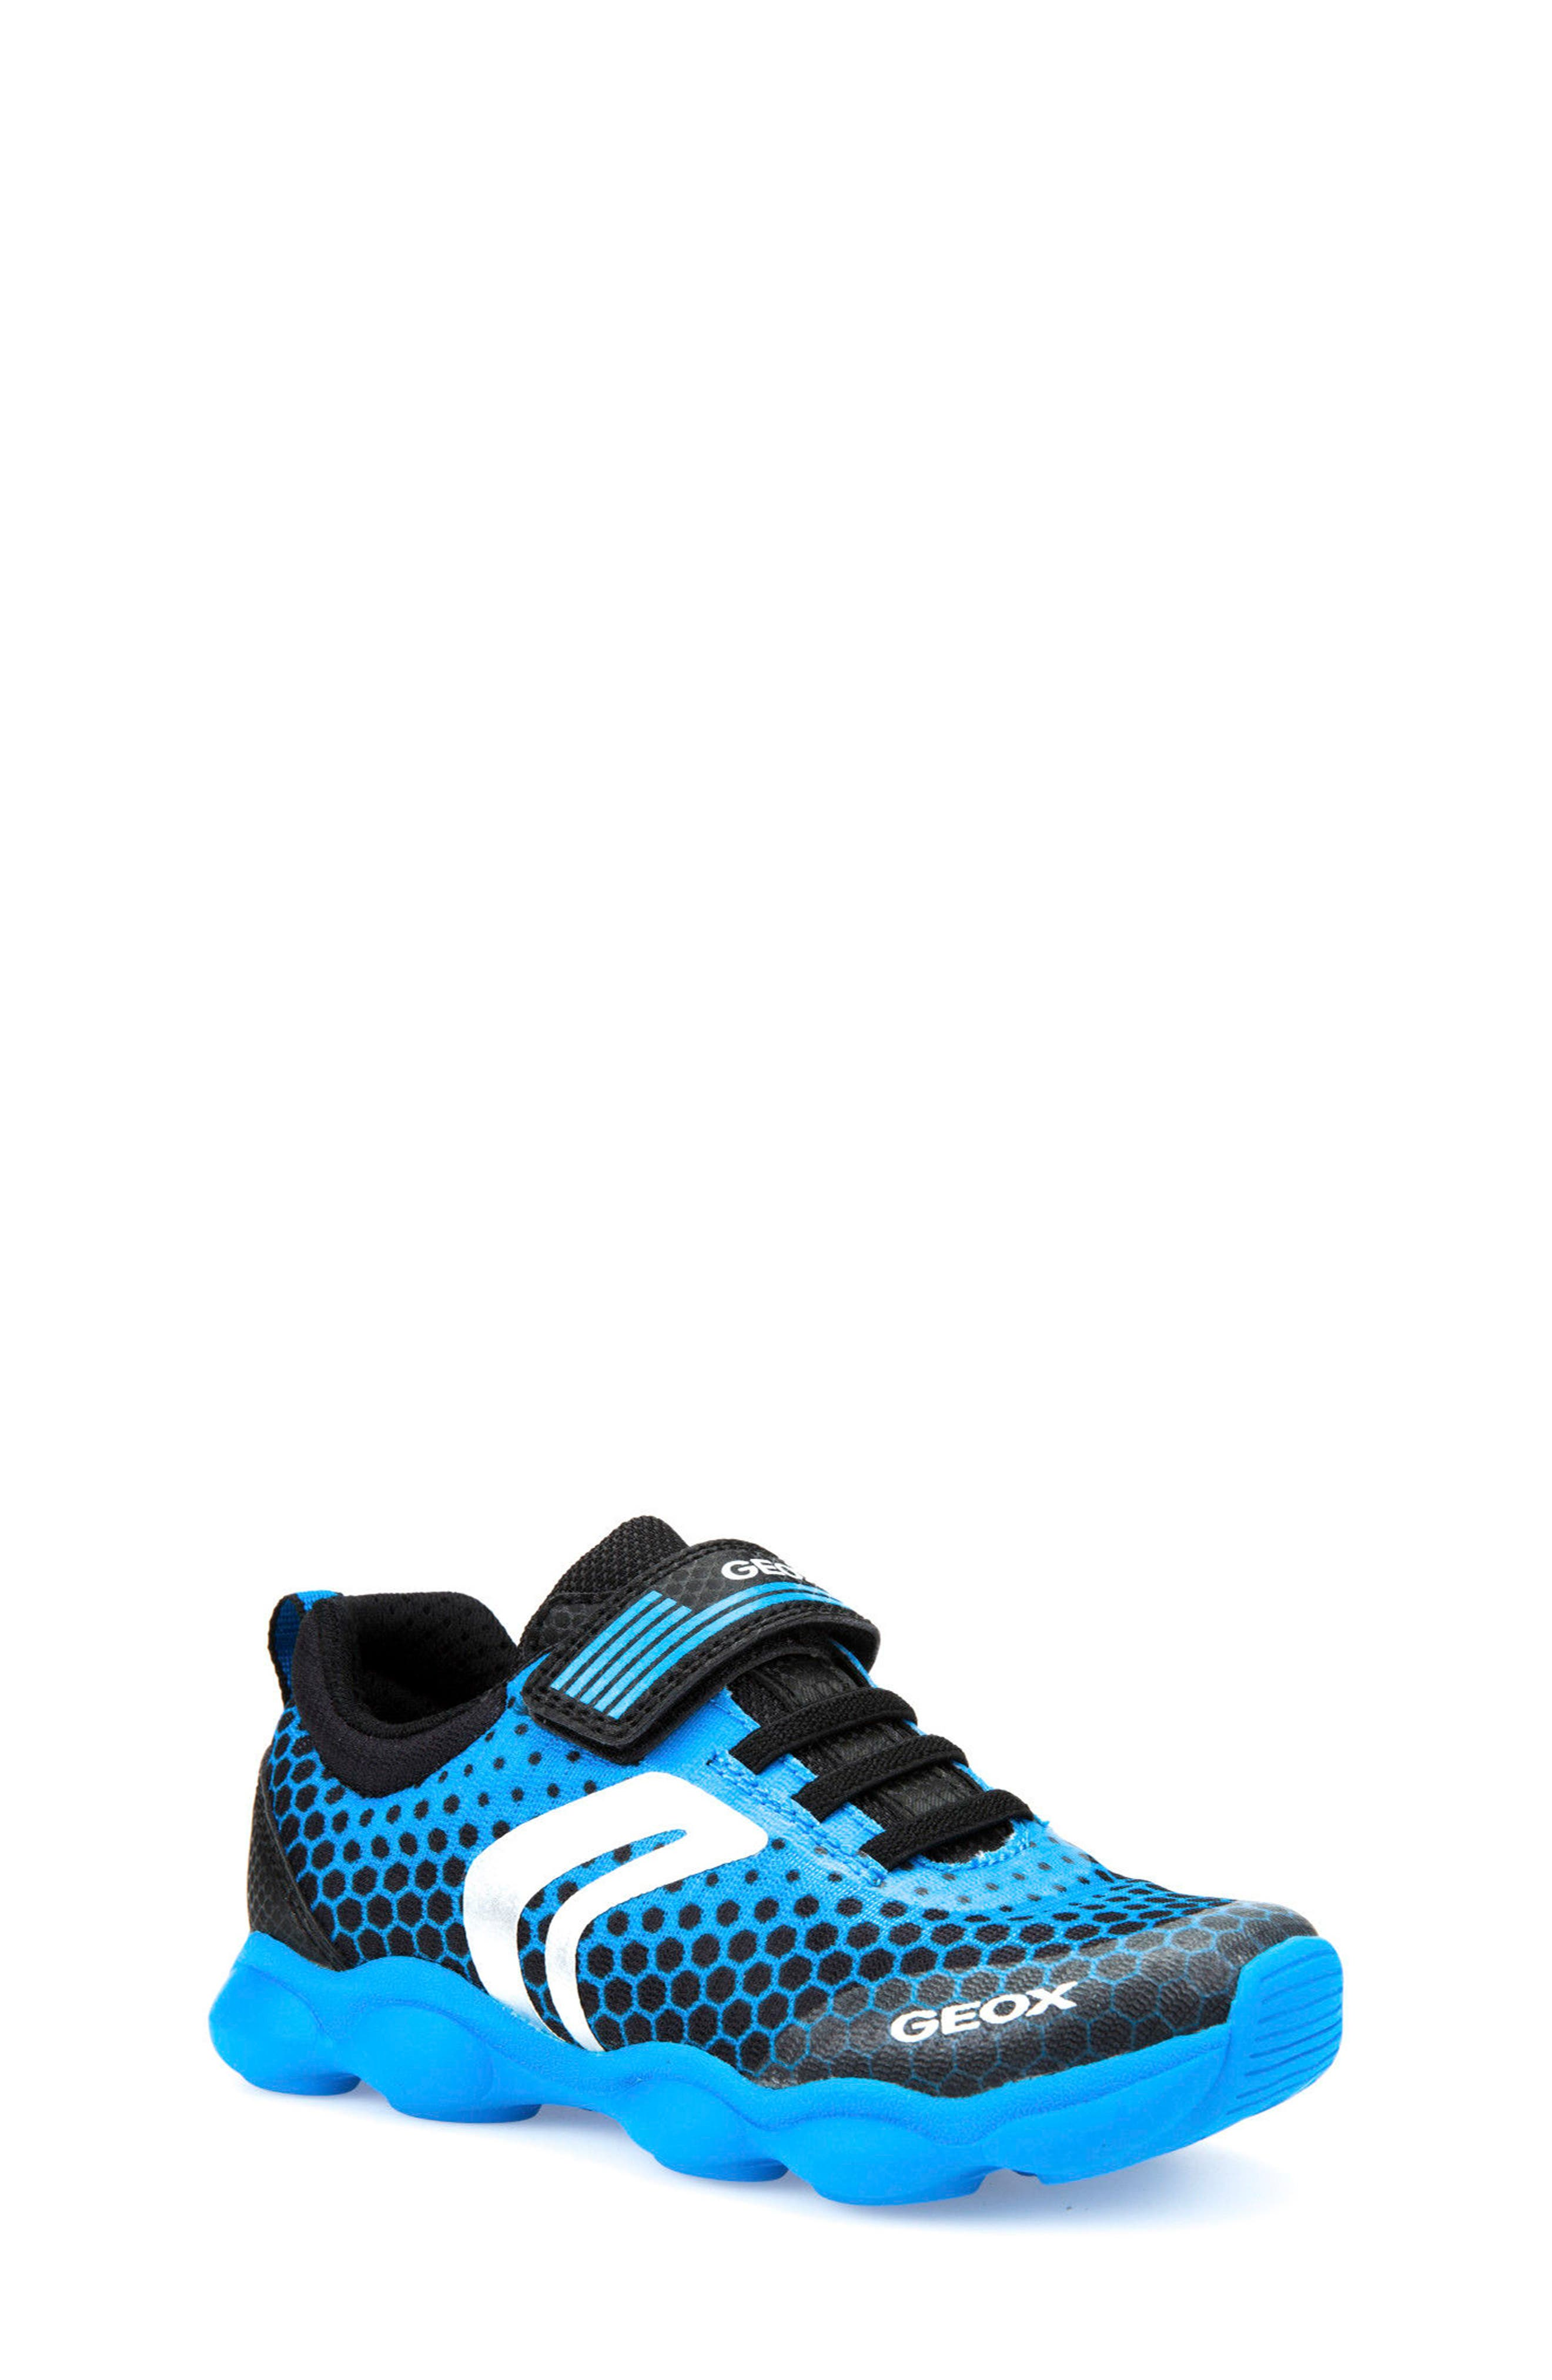 Munfrey Sneaker,                             Main thumbnail 1, color,                             Light Blue/ Black